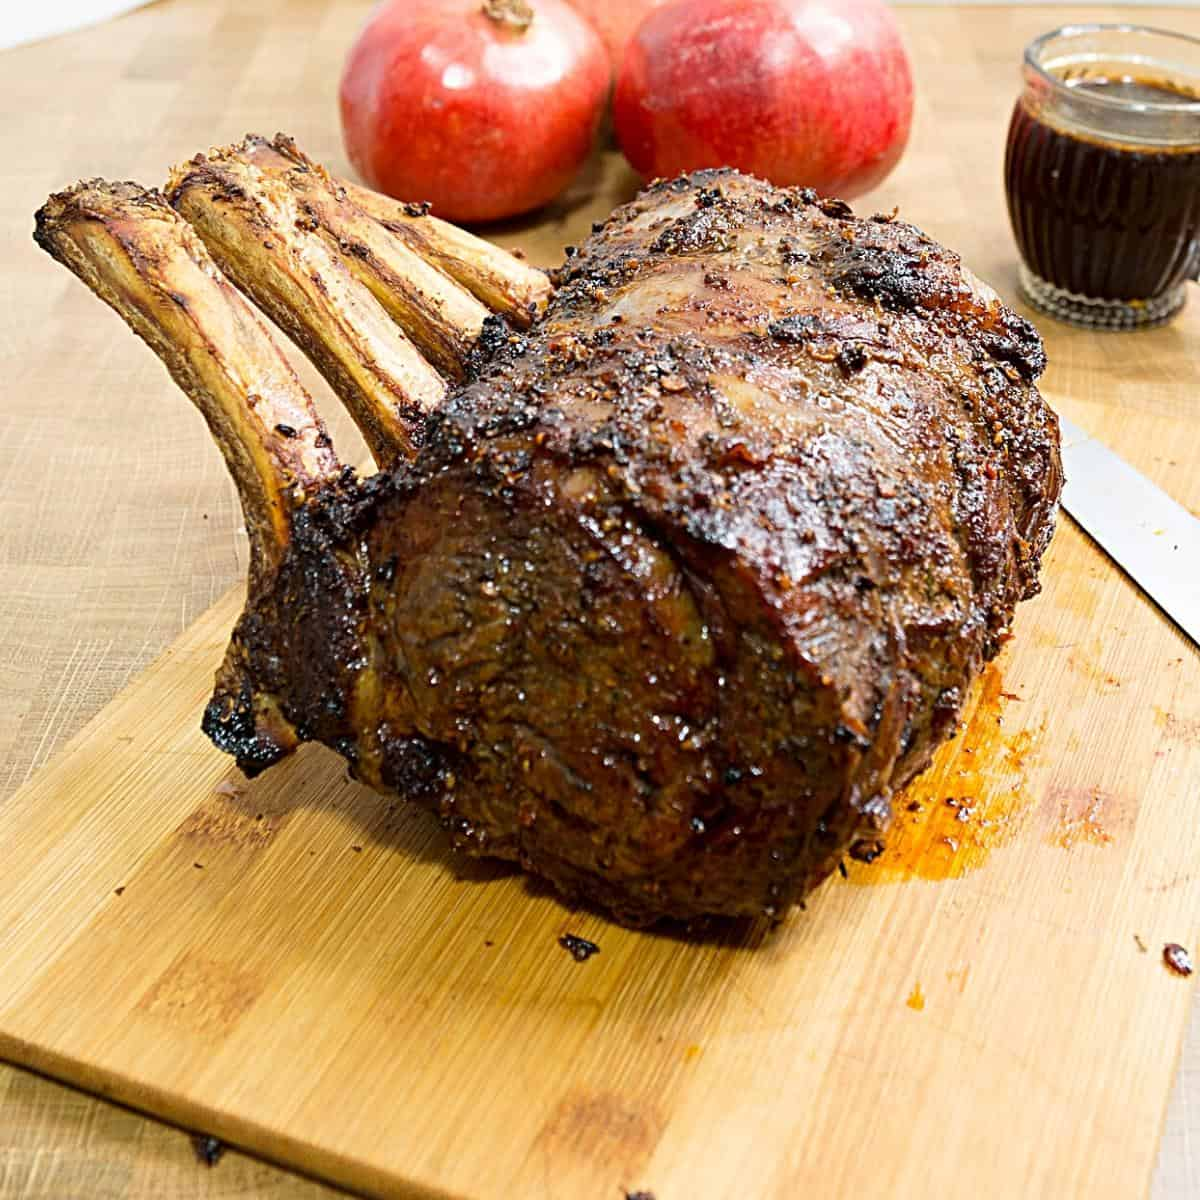 A roasted standing rib on a wooden board.